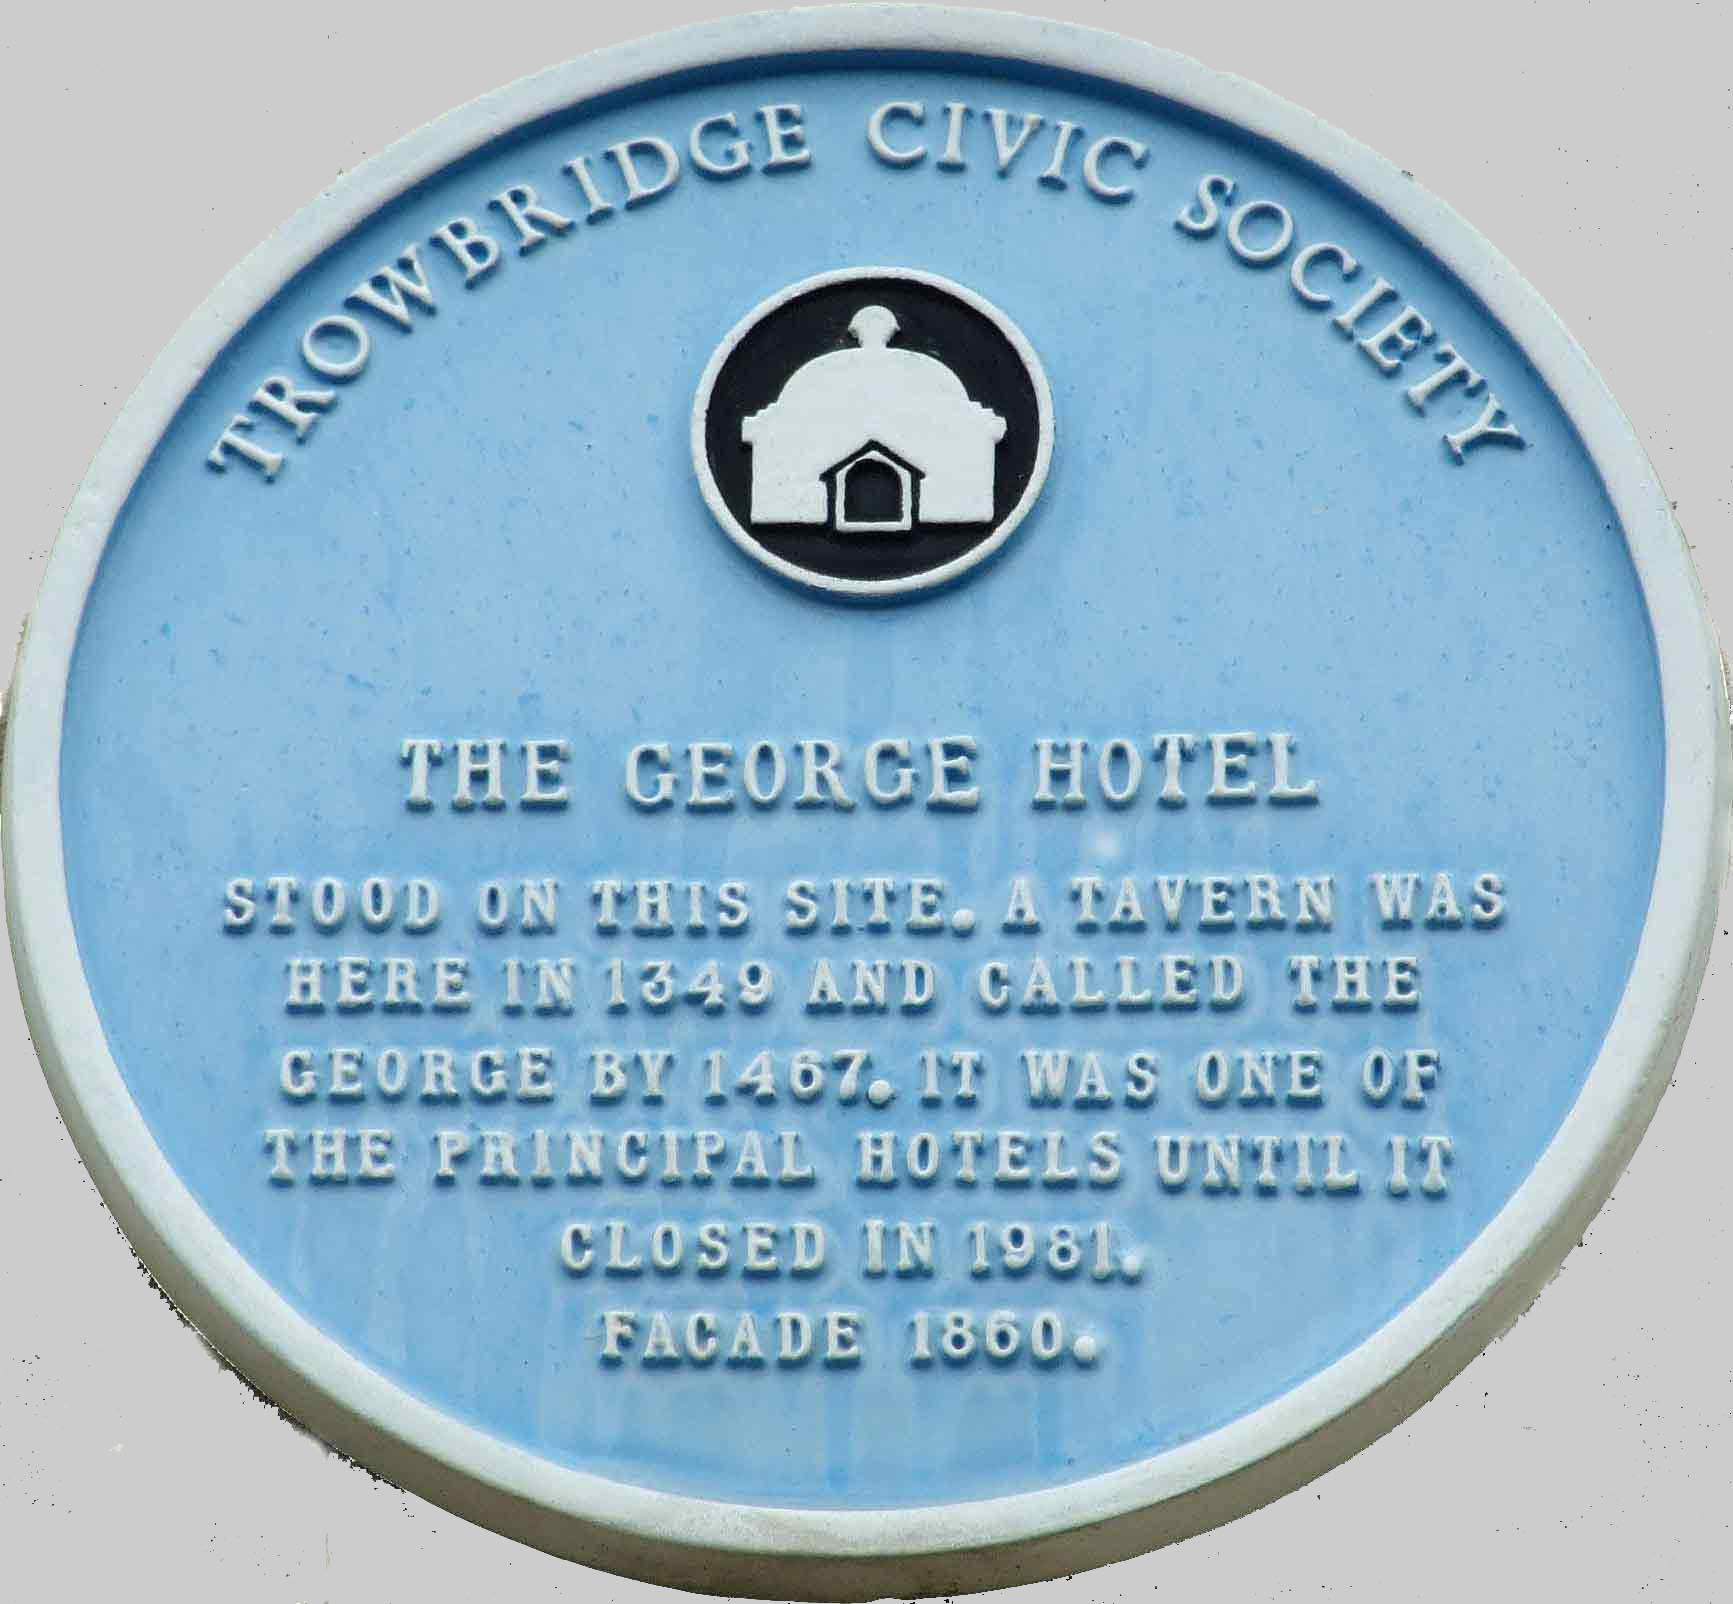 George Hotel Copyright - K. J. Hartley